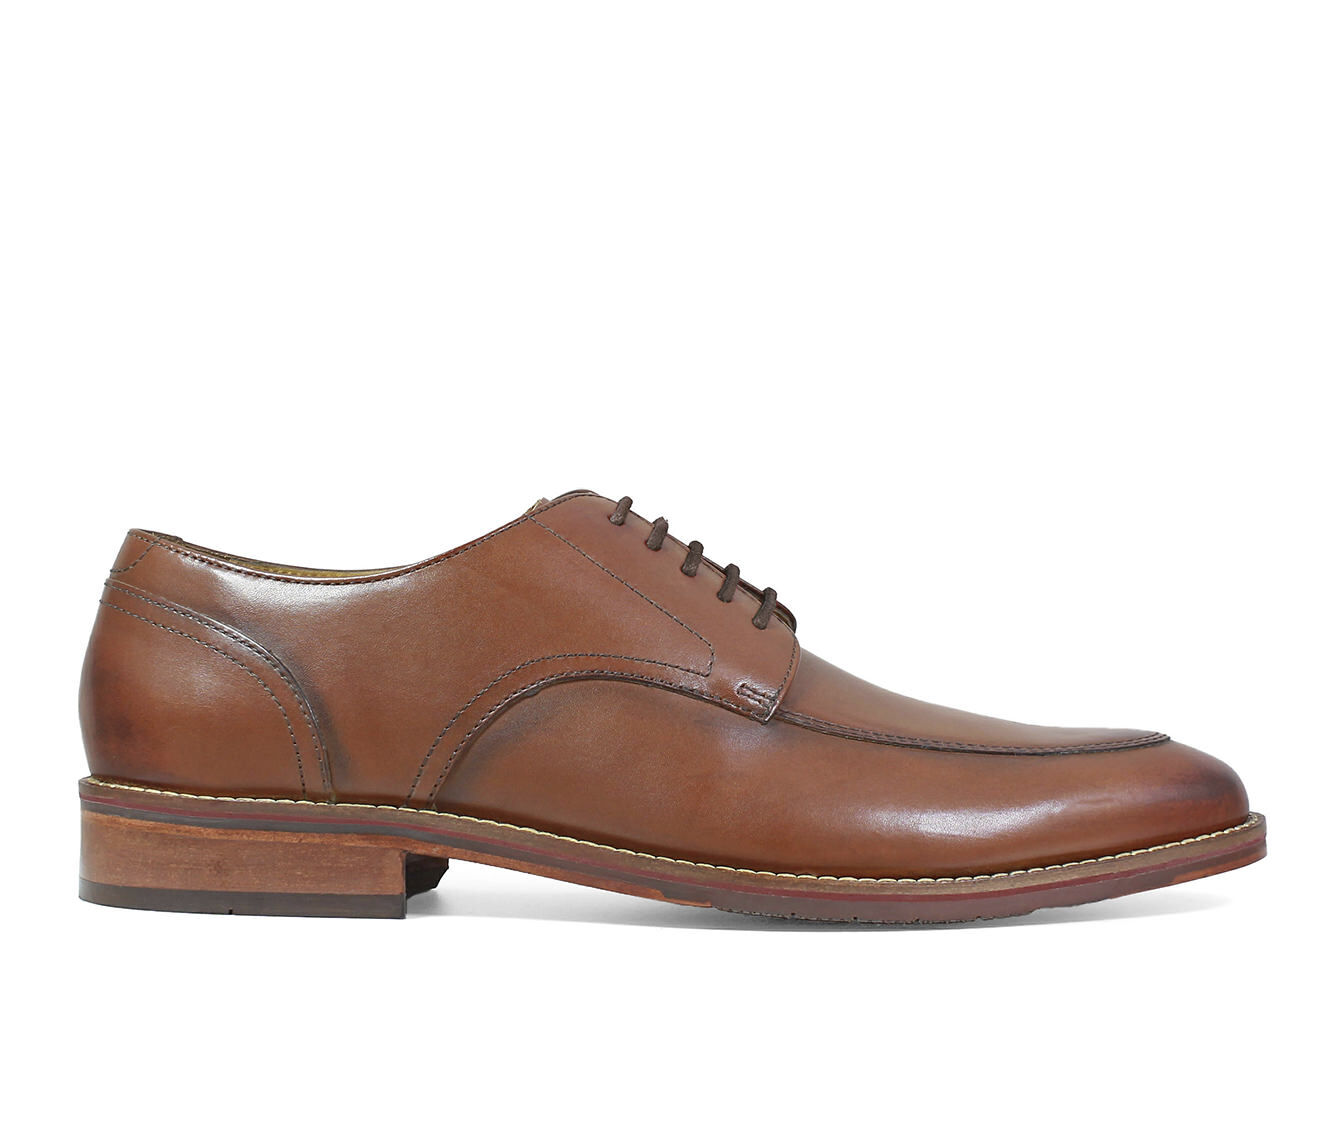 Men's Florsheim Salerno Moc Oxford Dress Shoes Cognac